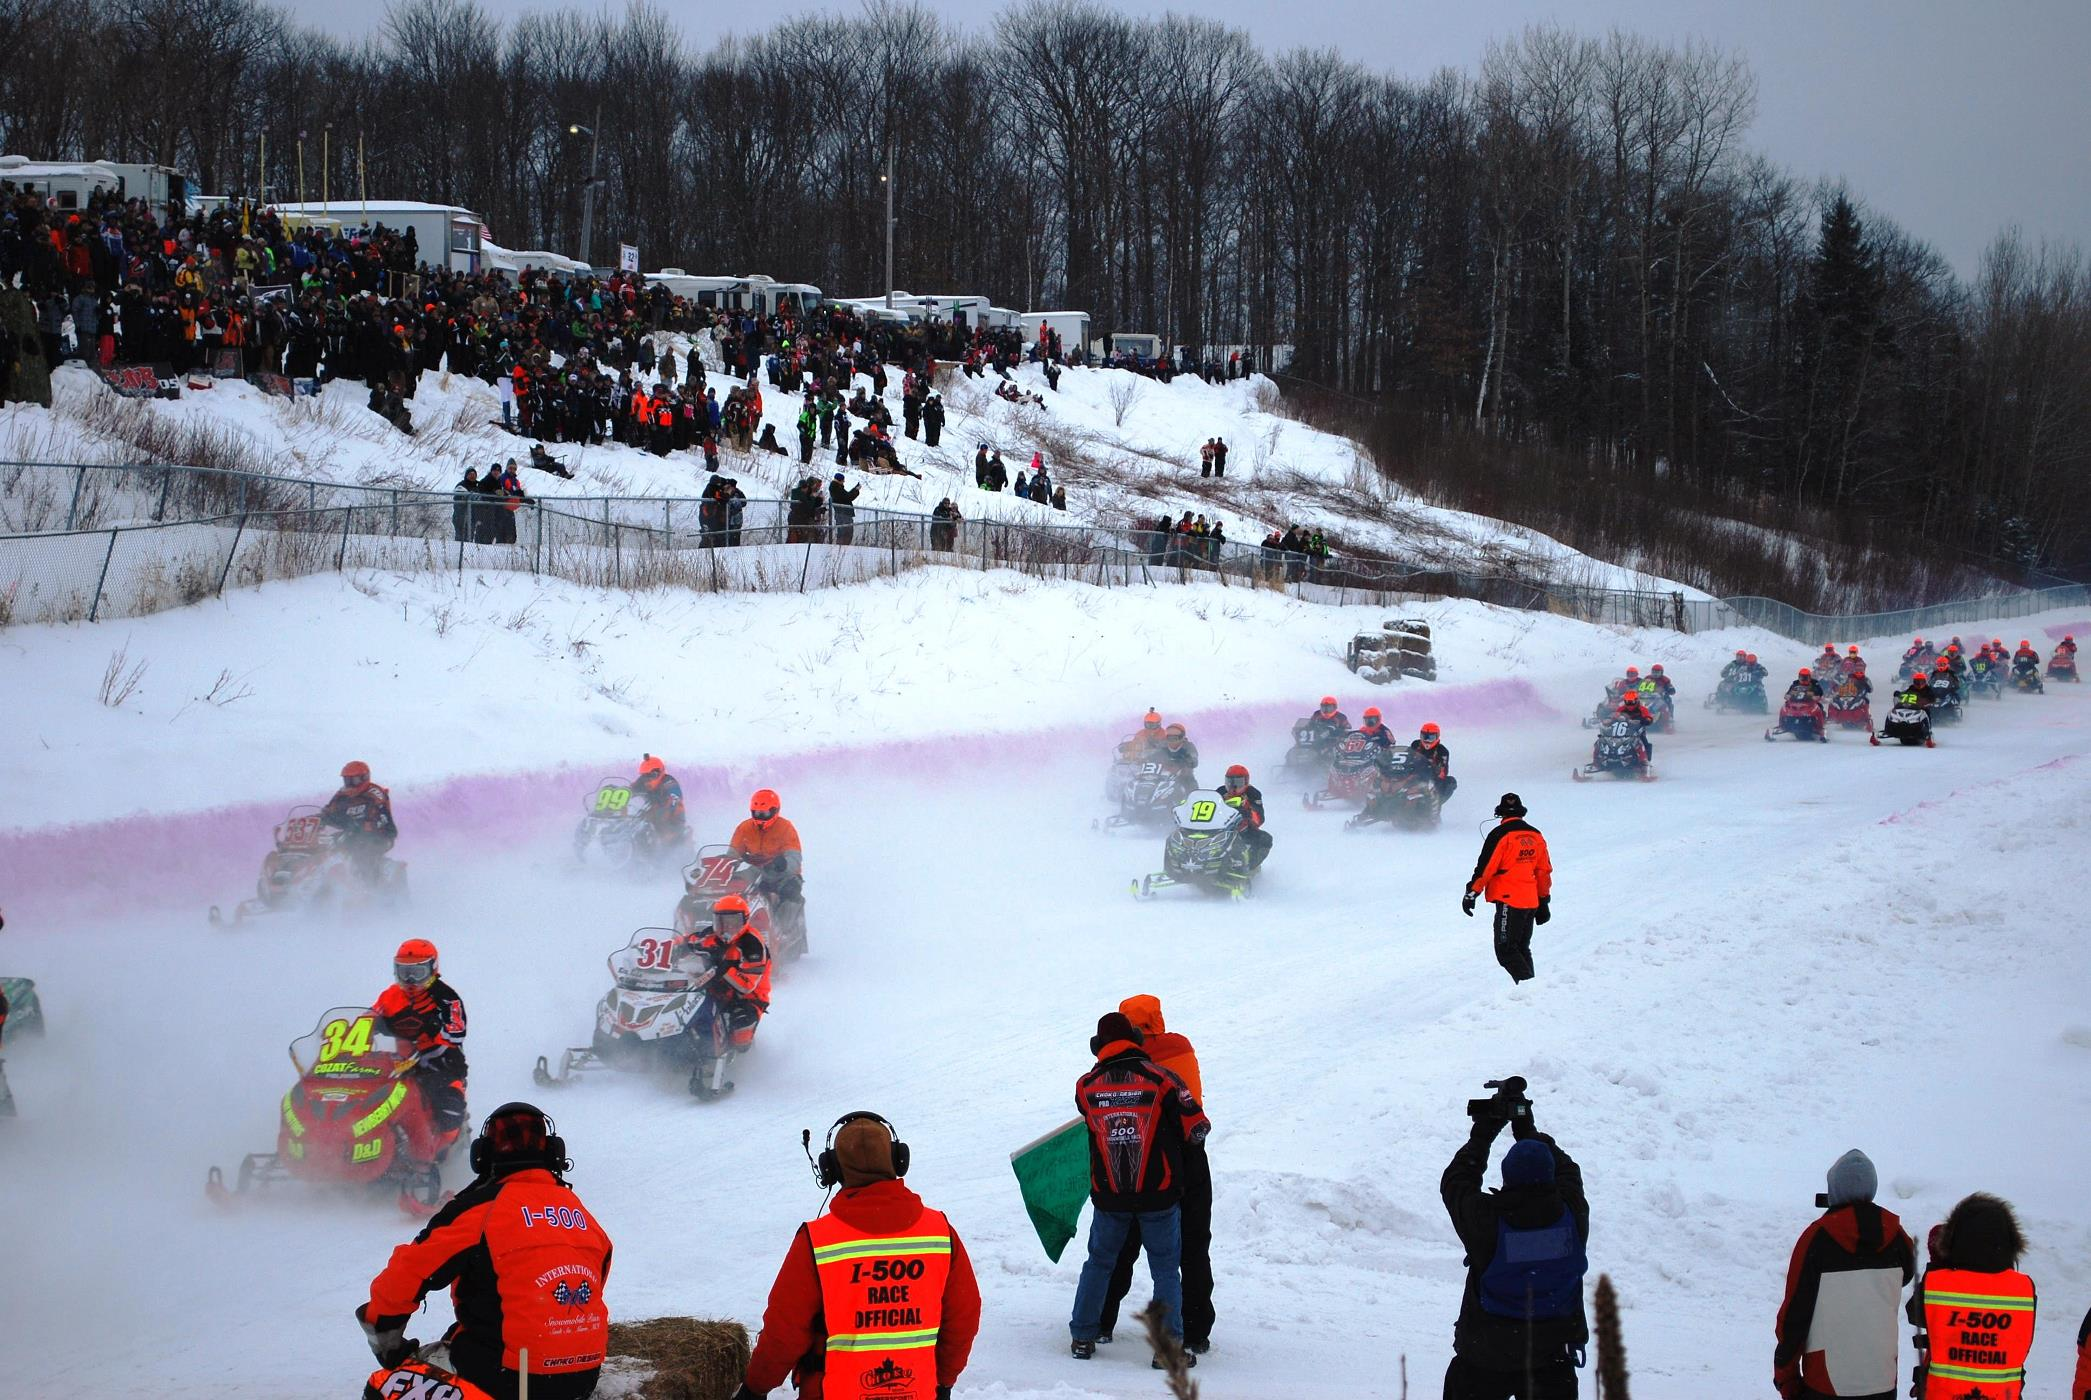 Photo credit: Fans and race officials look on as participants in the annual I-500 snowmobile competition vie for the finish line. [Image courtesy of Great Getaways]